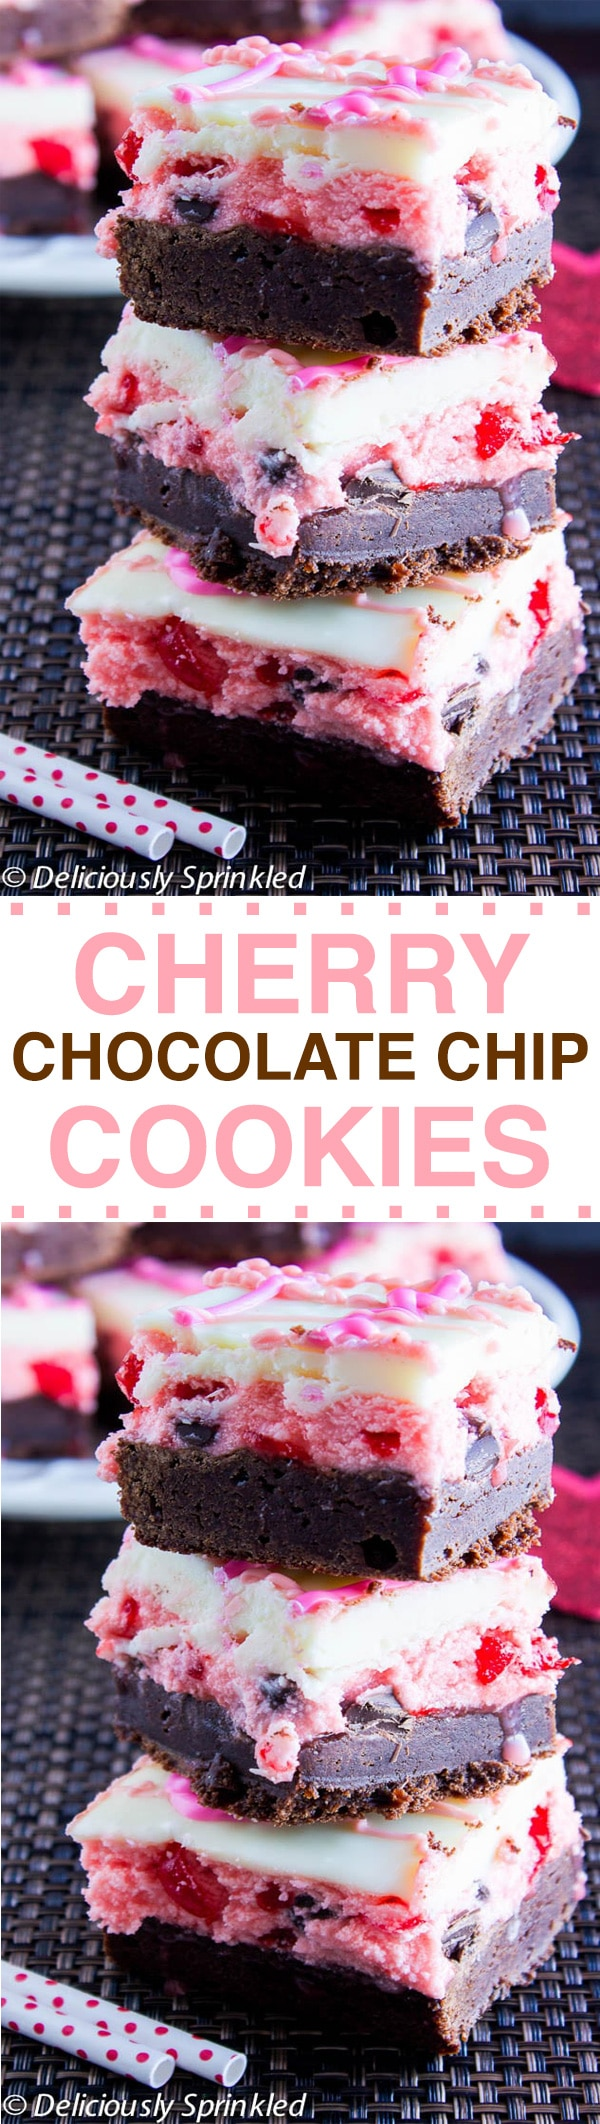 CHERRY CHOCOLATE CHIP BROWNIES RECIPE